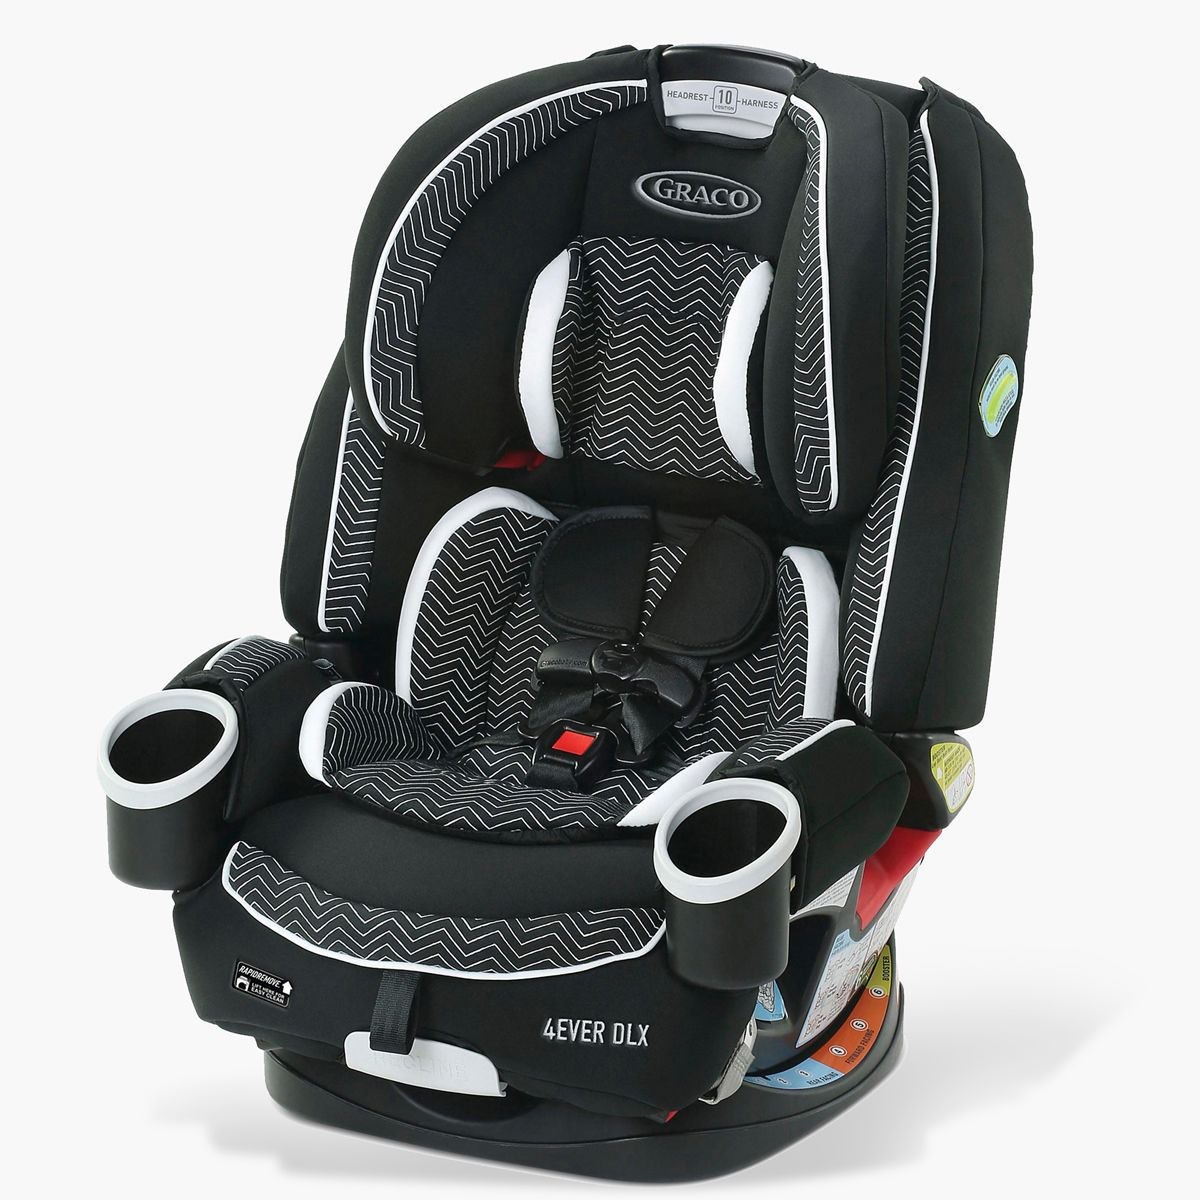 Car Seats & Strollers